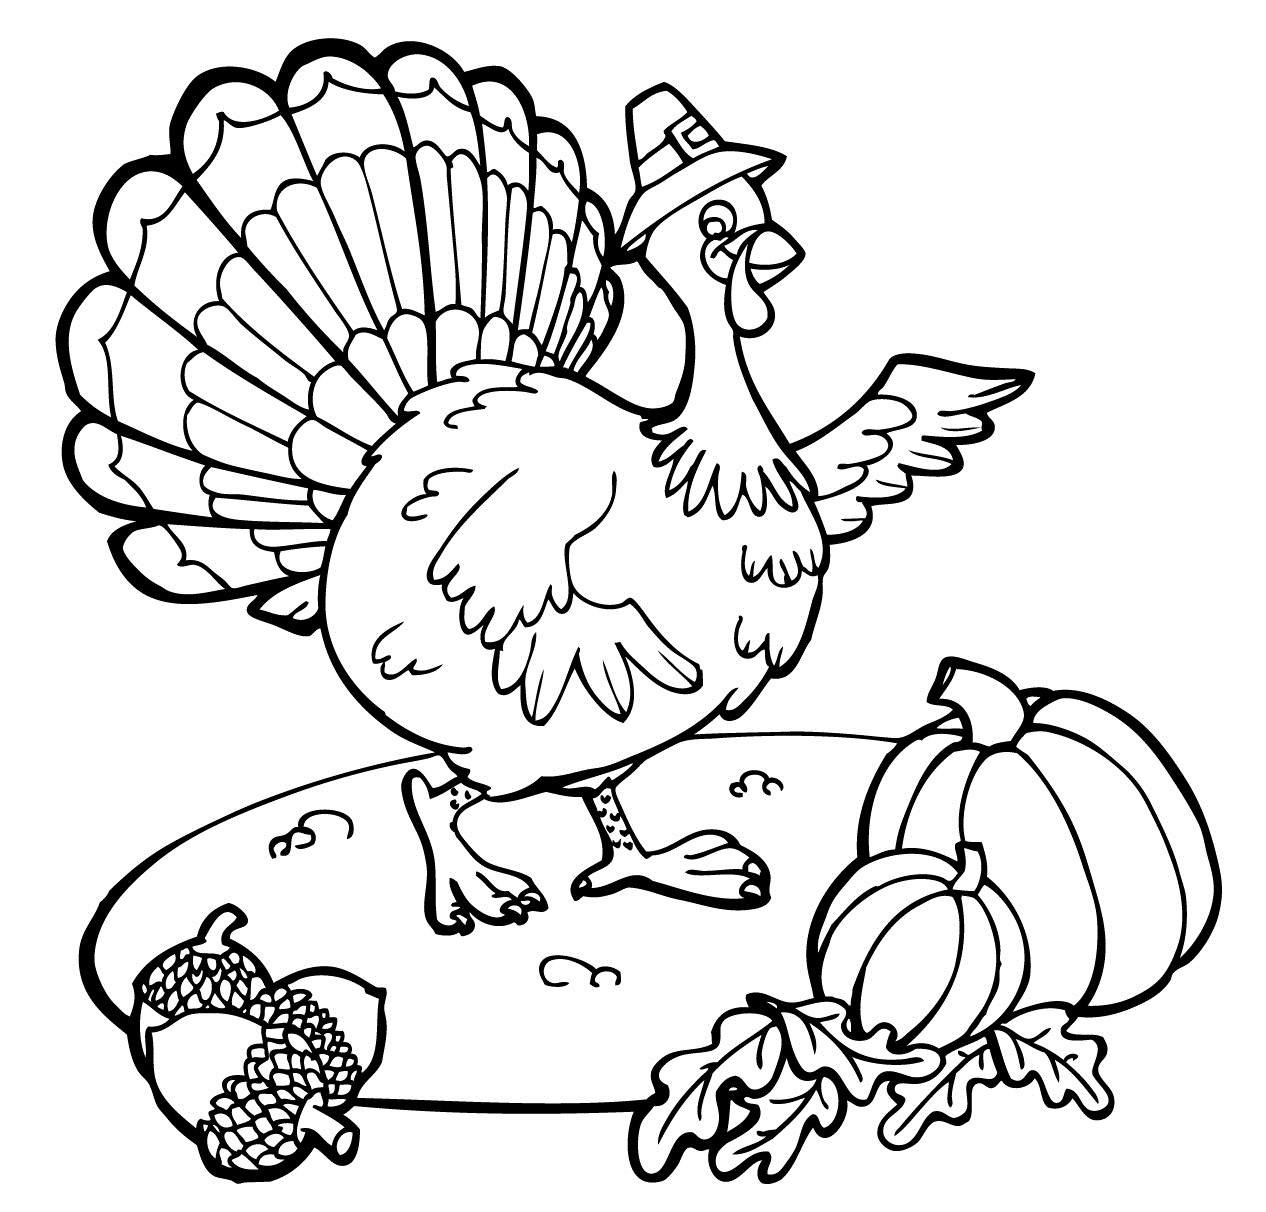 Coloring Pages Turkeys Preschool : Free printable thanksgiving coloring pages for kids